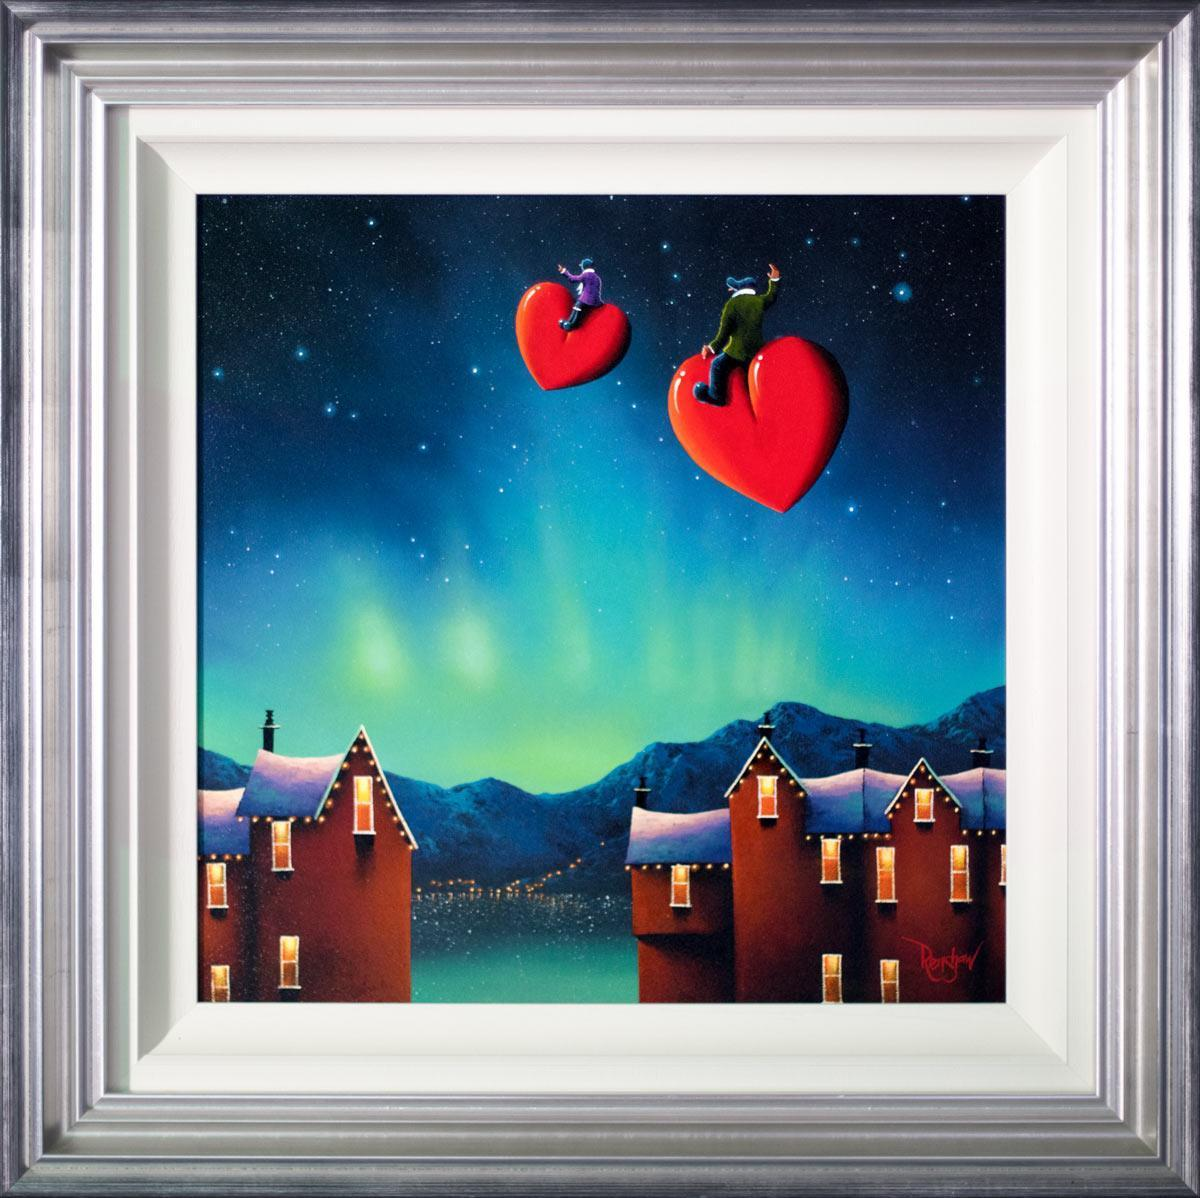 Trip of a Lifetime - Original David Renshaw